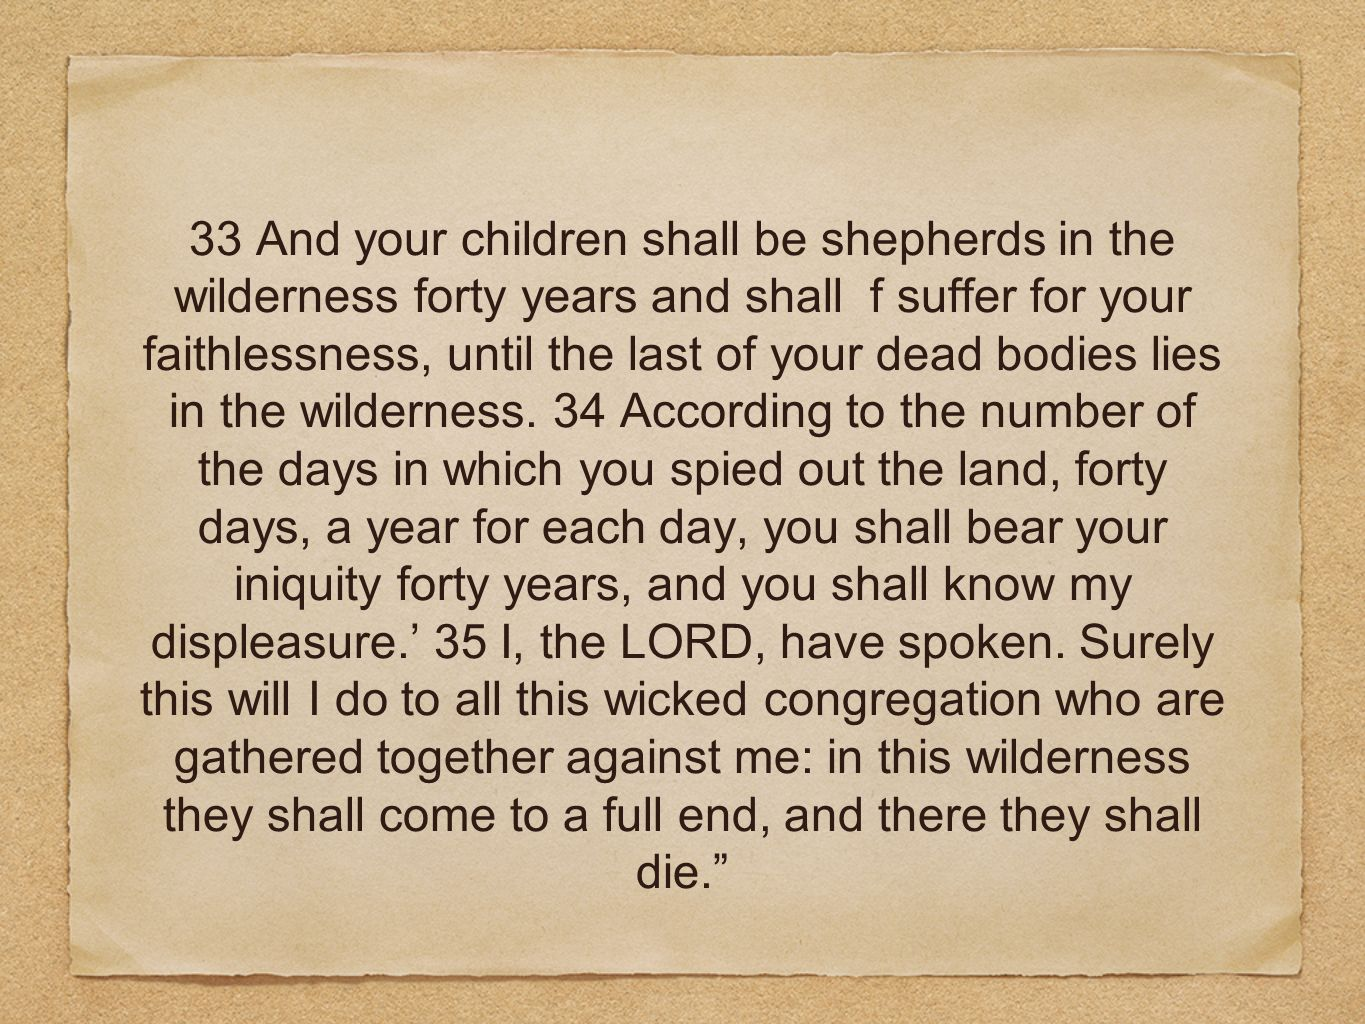 33 And your children shall be shepherds in the wilderness forty years and shall f suffer for your faithlessness, until the last of your dead bodies lies in the wilderness.